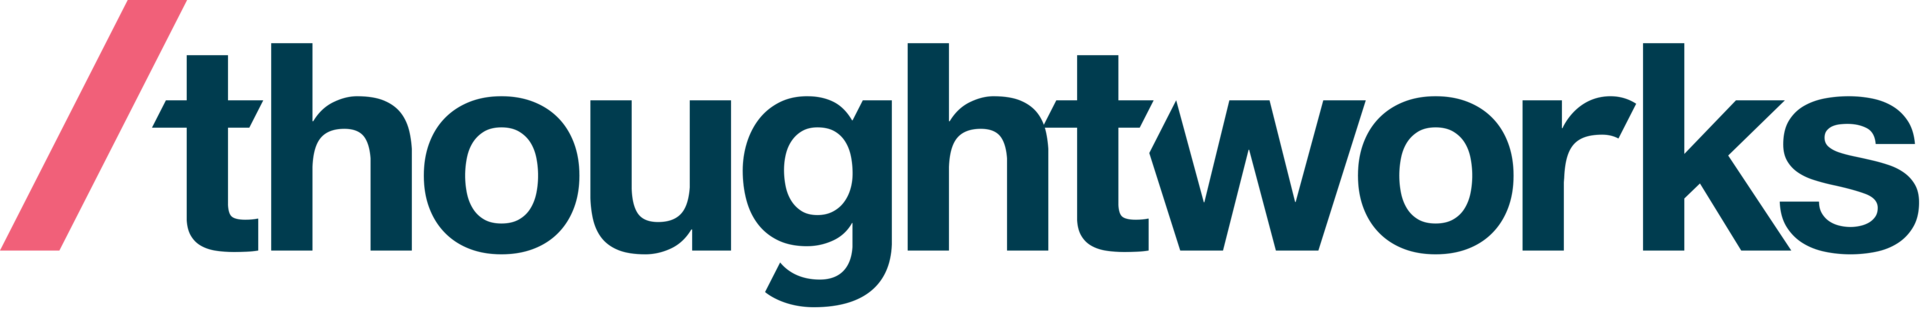 Thoughtworks Holding, Inc.